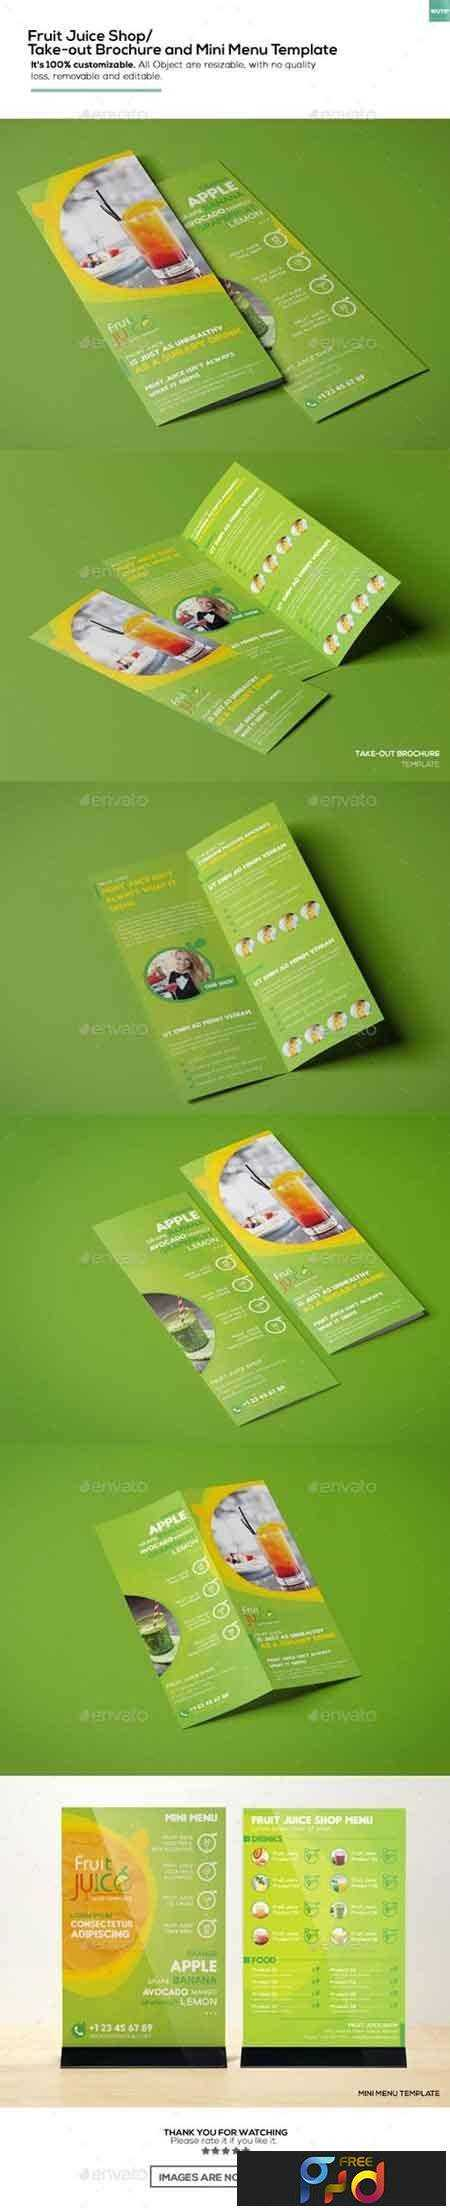 Fruit Juice Shop Takeout Brochure And Mini Menu Template - Mini brochure template